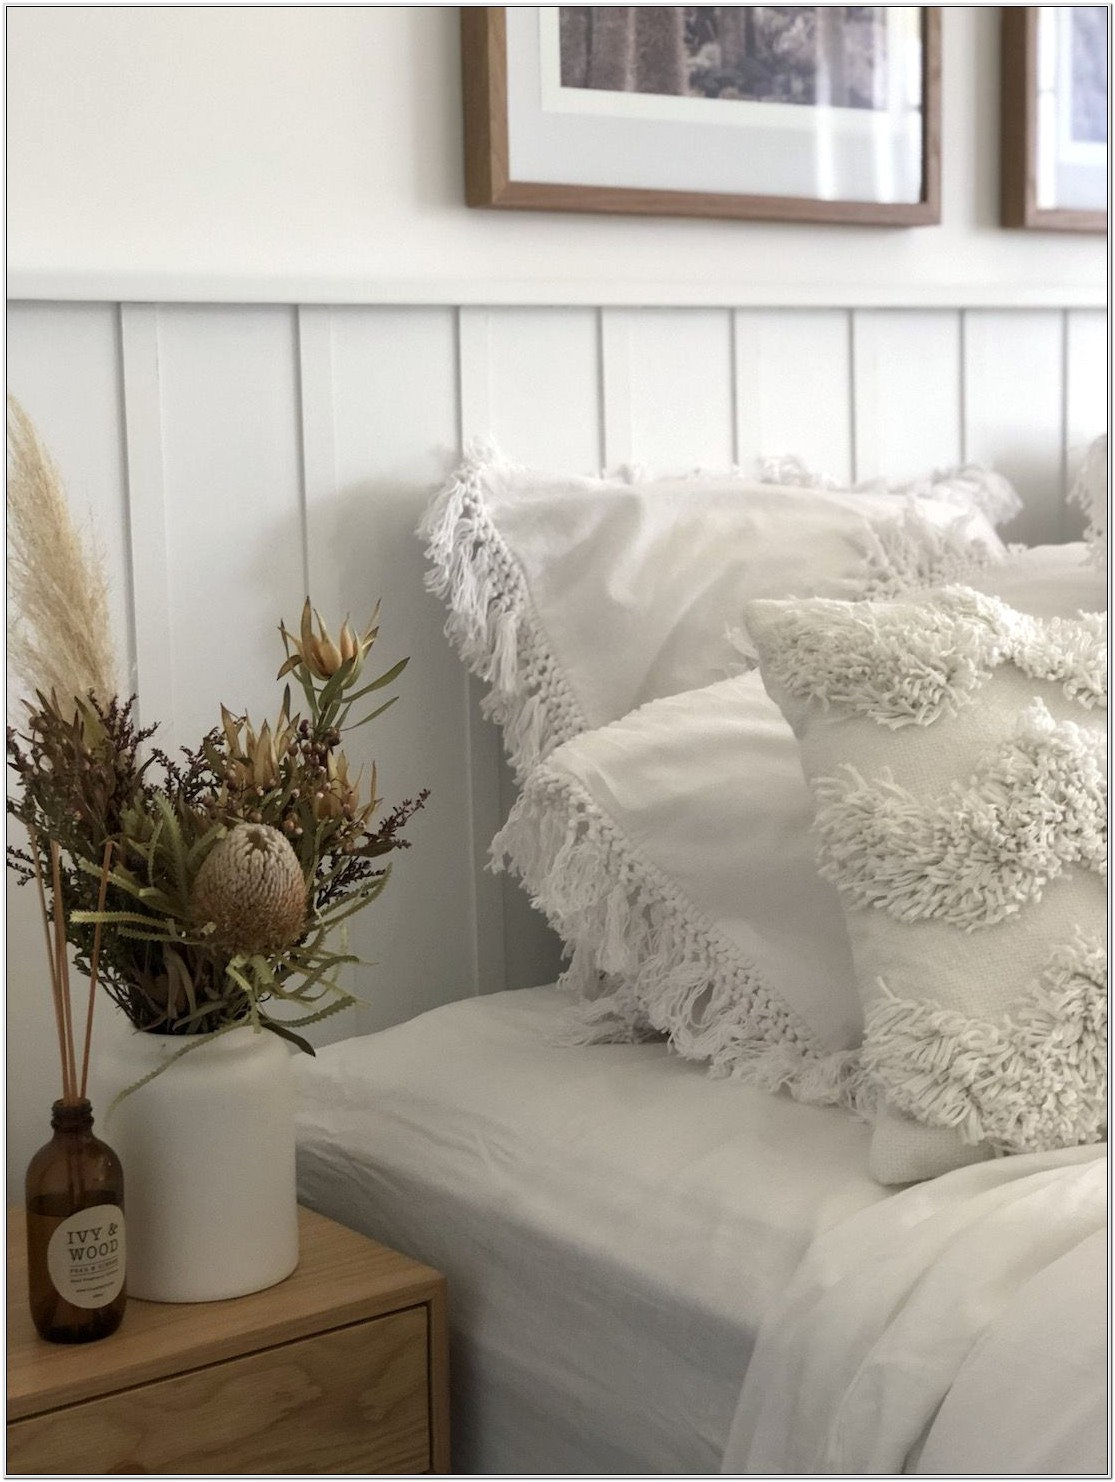 Decorating Ideas For Bedroom Walls Usuing Wainscoting